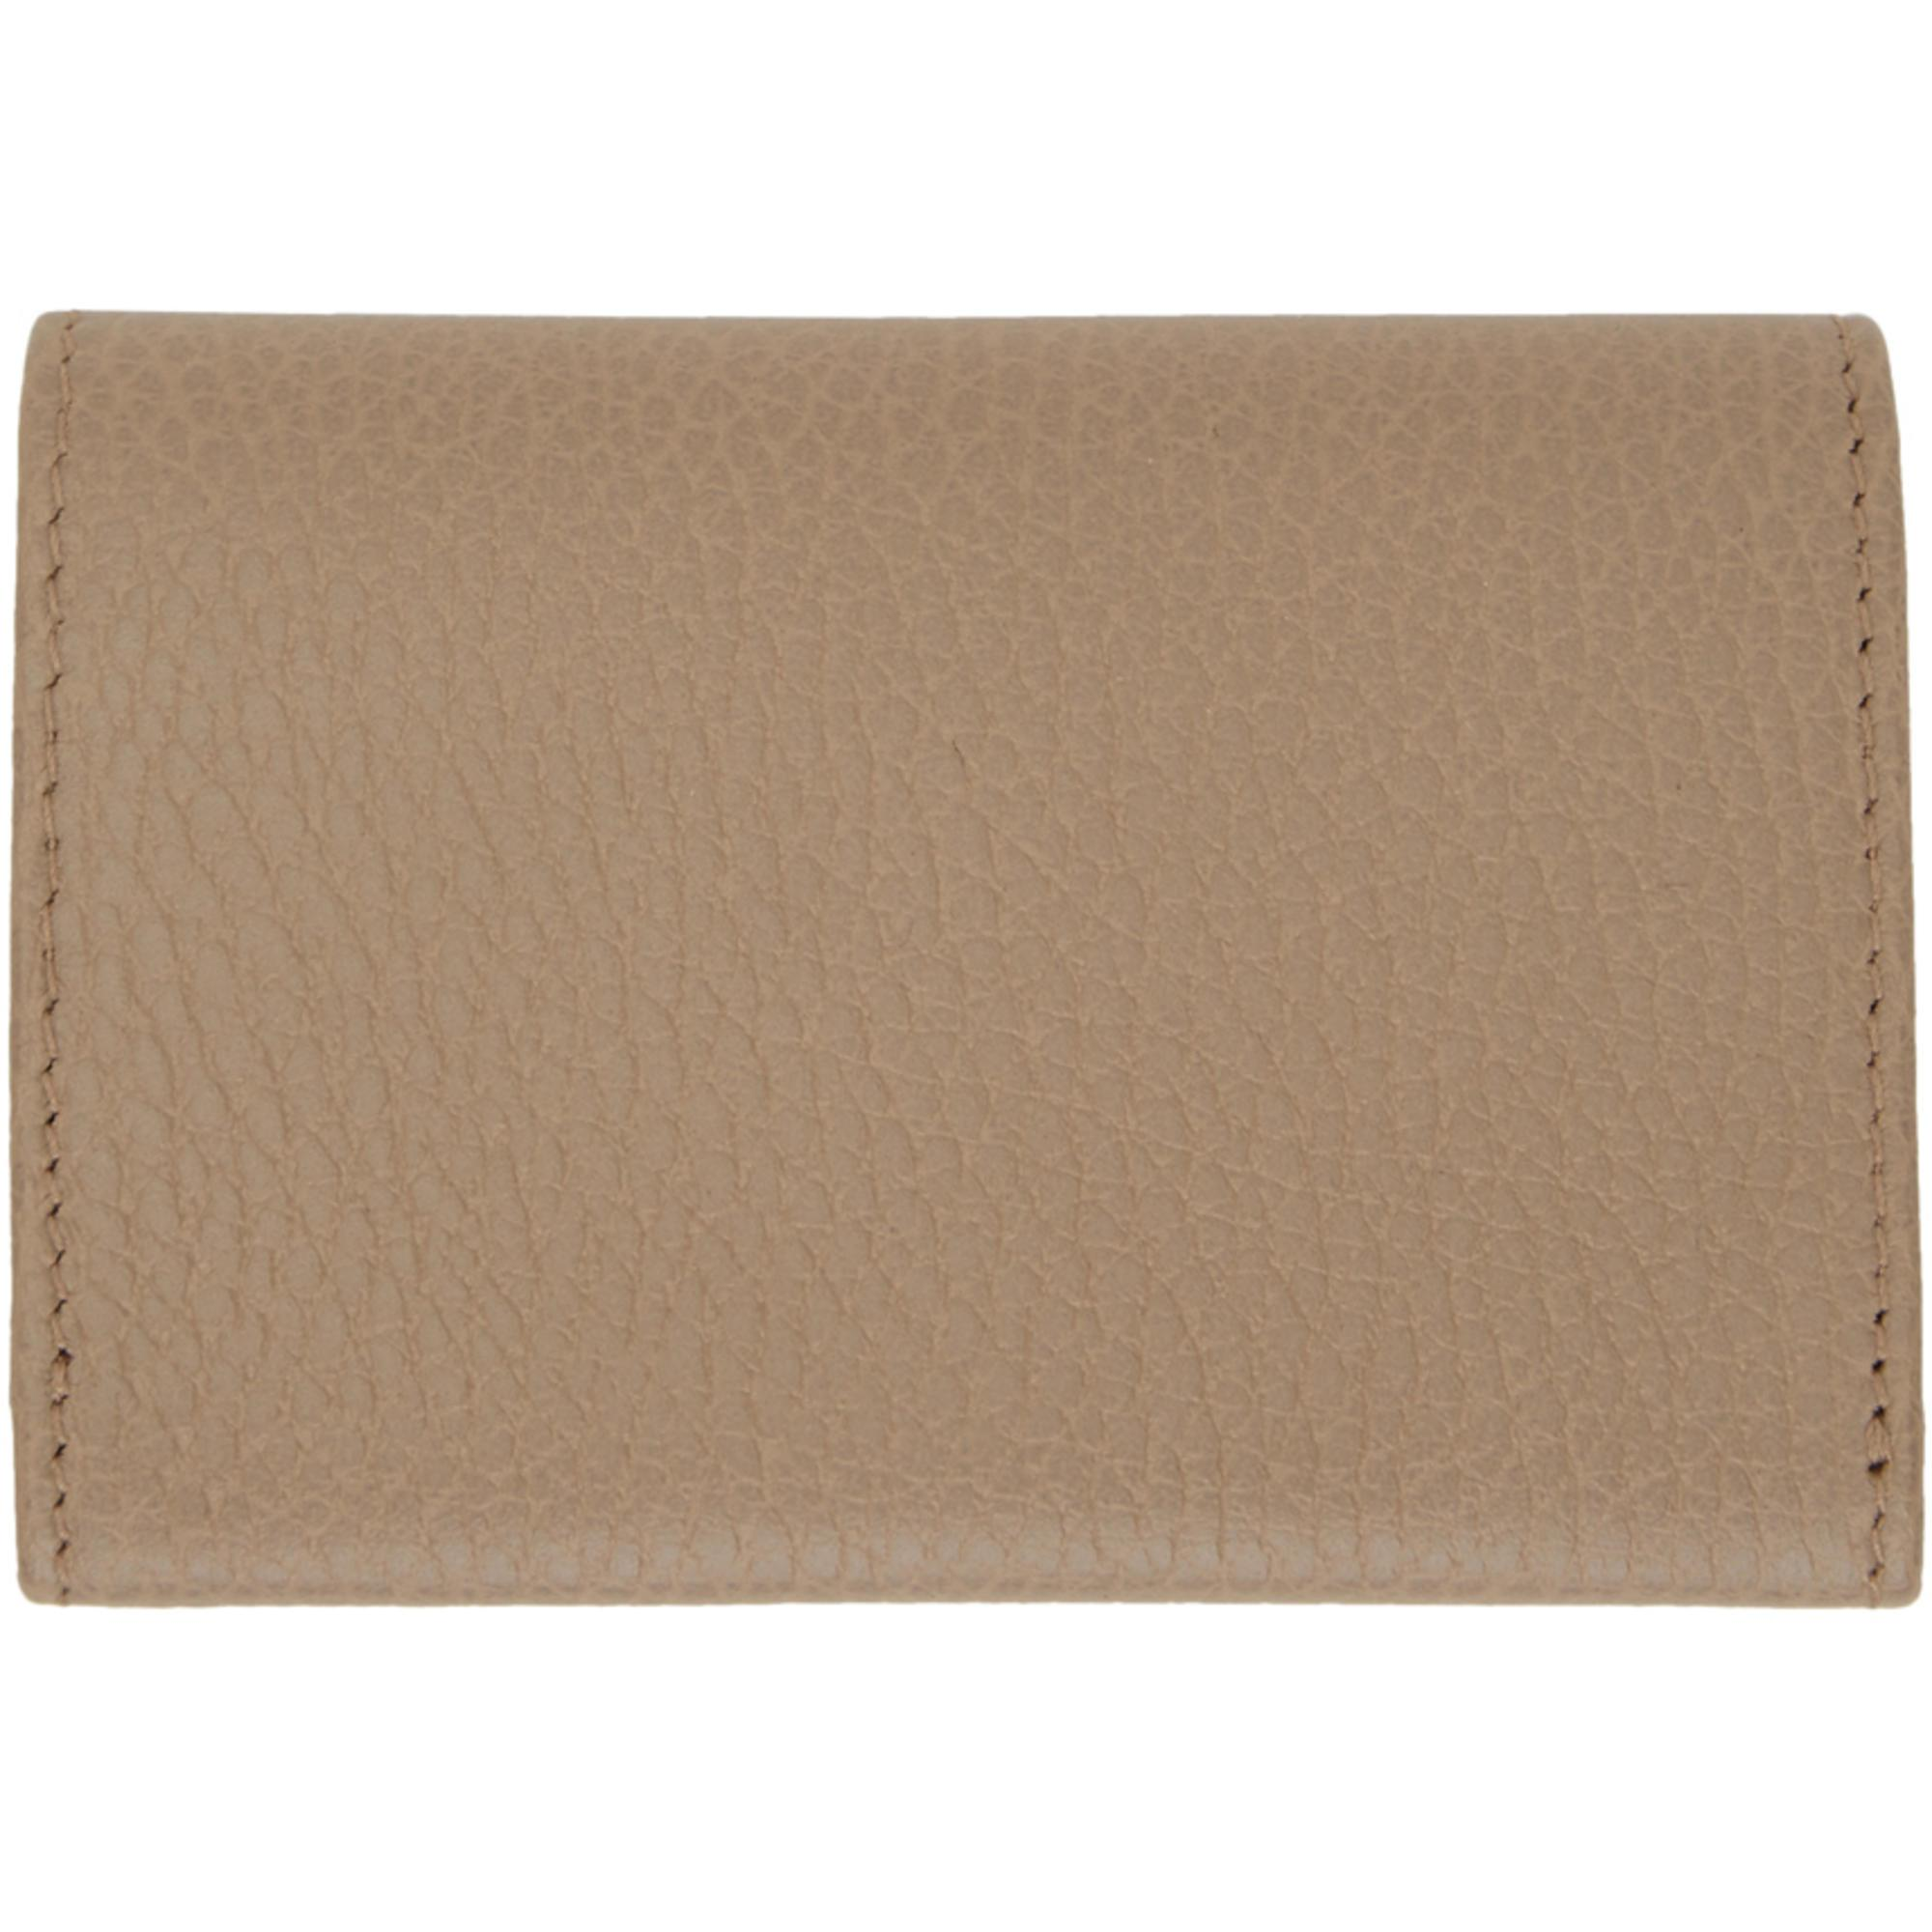 d68b93bfe49399 Gucci Beige Petite Gg Marmont Card Holder in Natural - Lyst